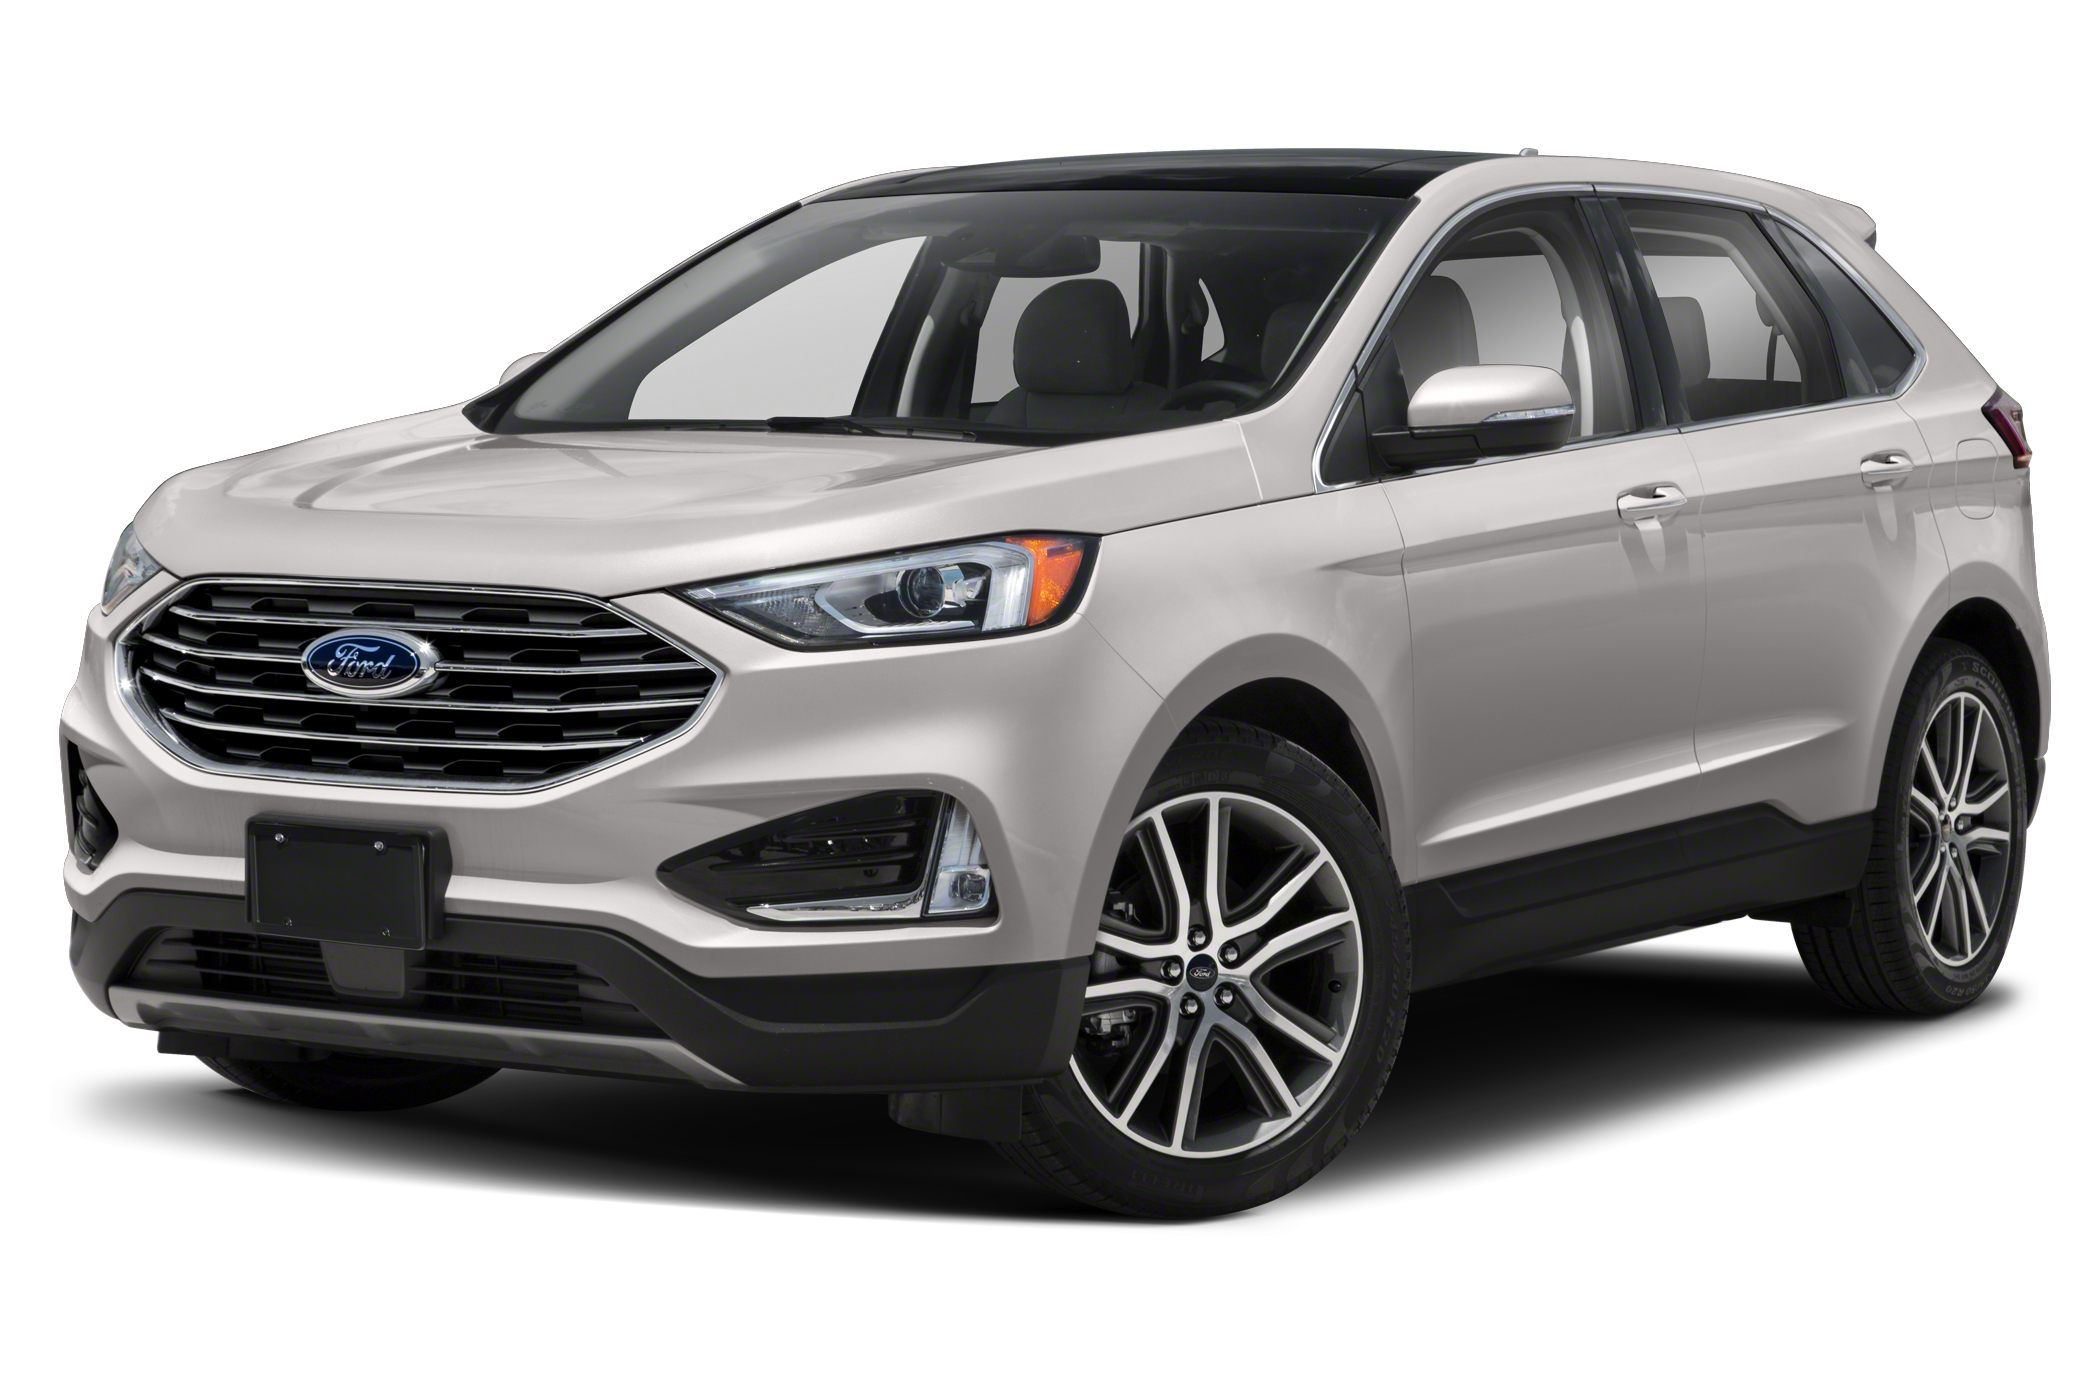 2020 Ford Edge Titanium Review.2020 Ford Edge Titanium 4dr All Wheel Drive Specs And Prices